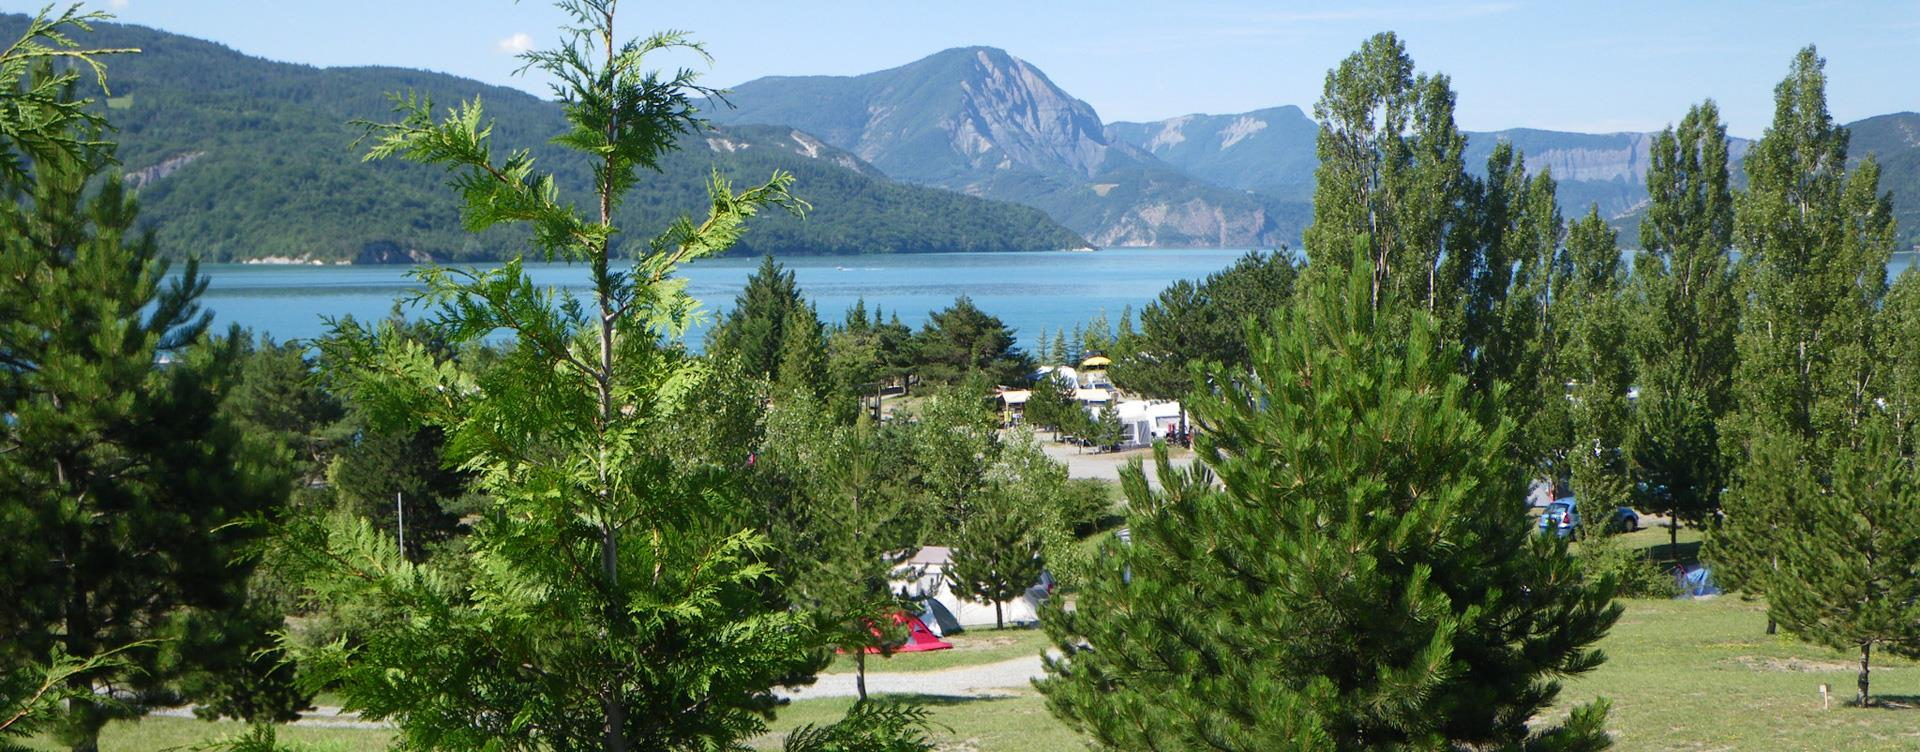 View of the camping spaces in Camping le Roustou on the edge of the Serre-Ponçon Lake